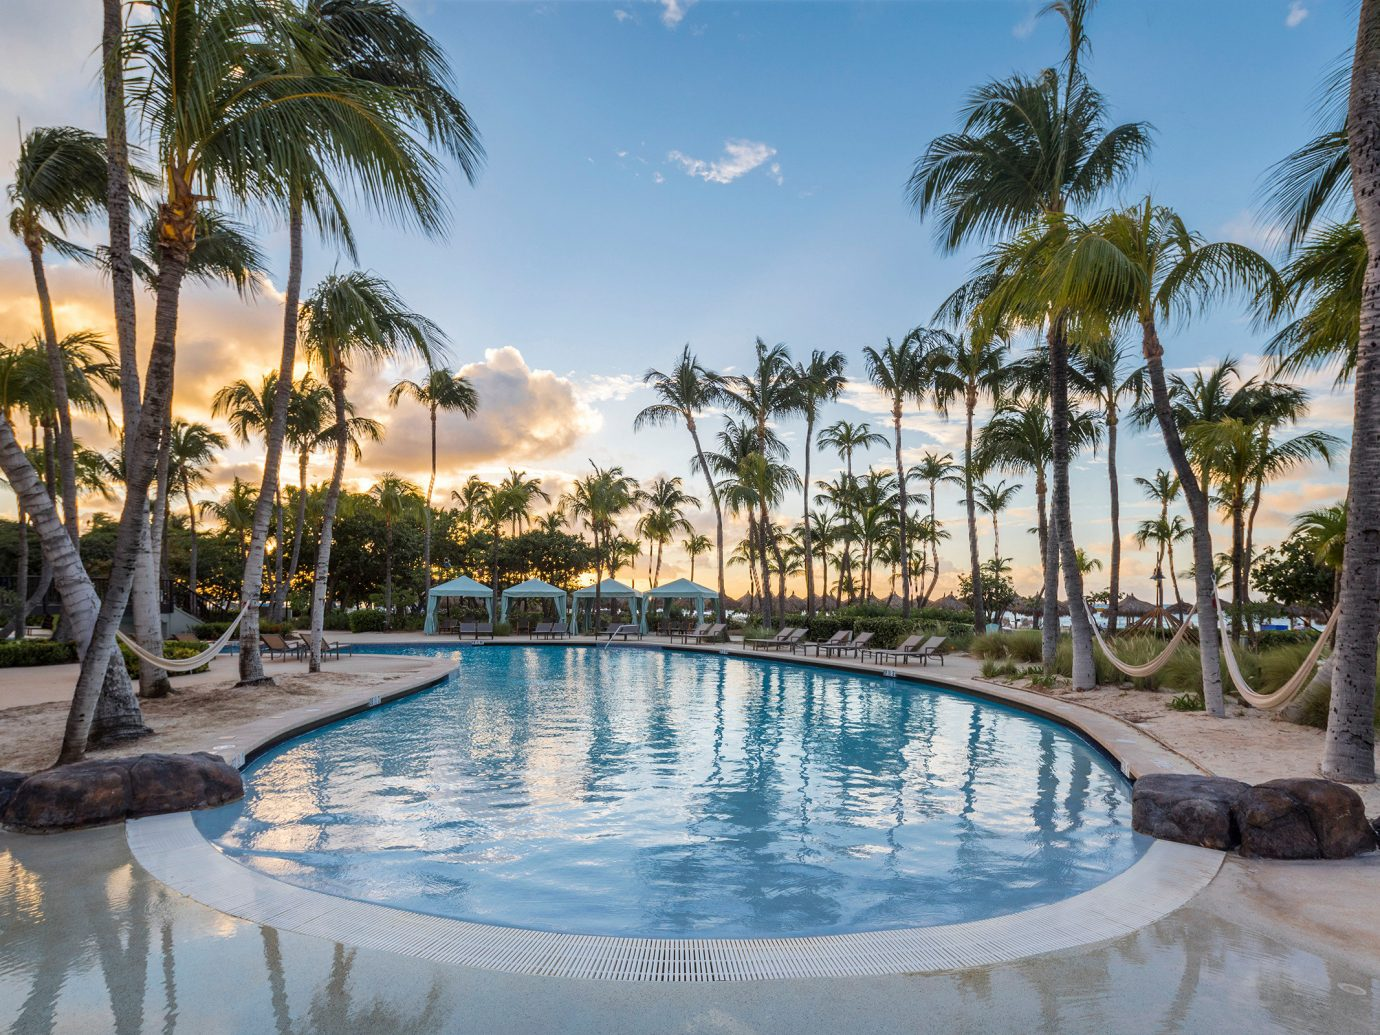 Trip Ideas tree outdoor water sky palm swimming pool Pool property Resort leisure vacation estate arecales resort town Villa real estate Lake caribbean Lagoon plant lined swimming shore several sandy